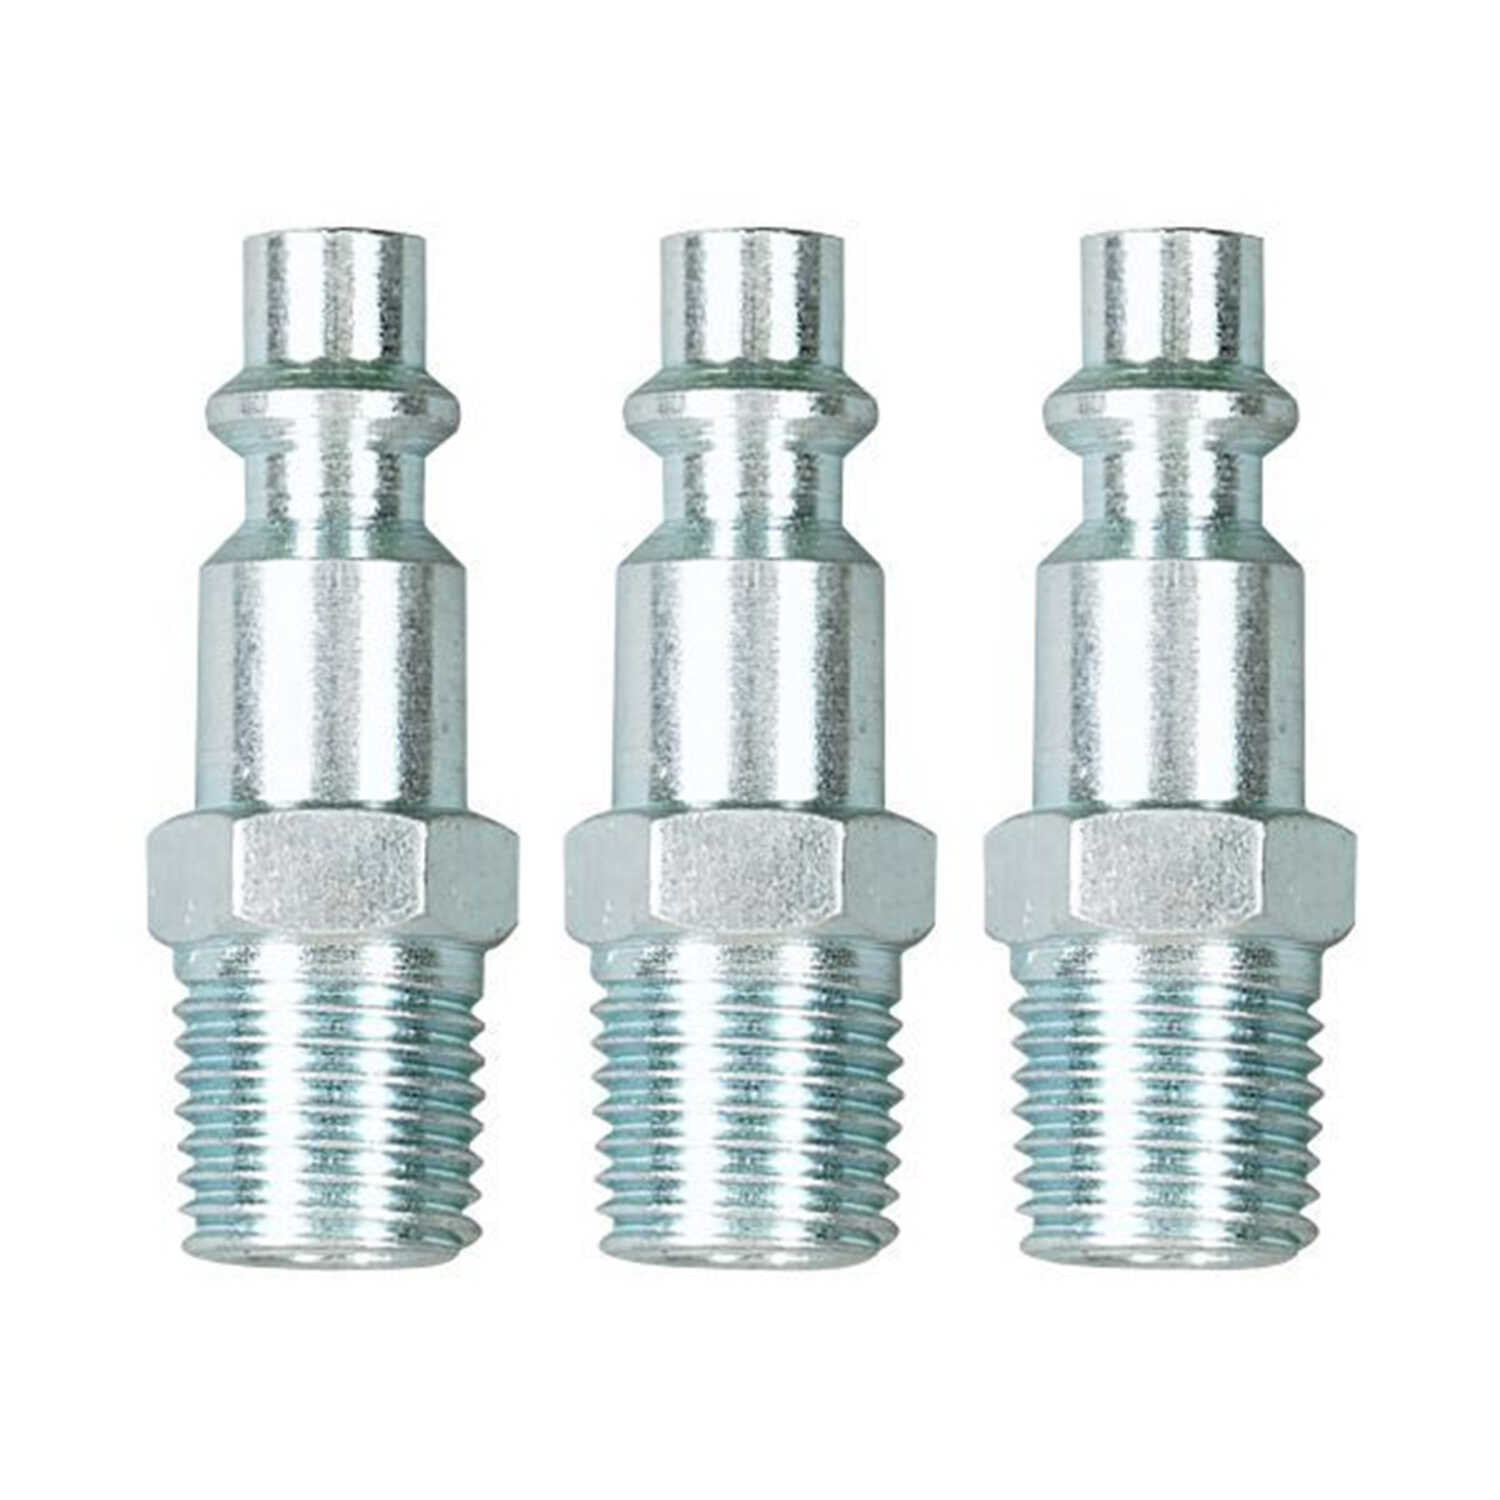 Craftsman  Stainless Steel  Quick Connect Studs  1/4 in. Male  3 pc.